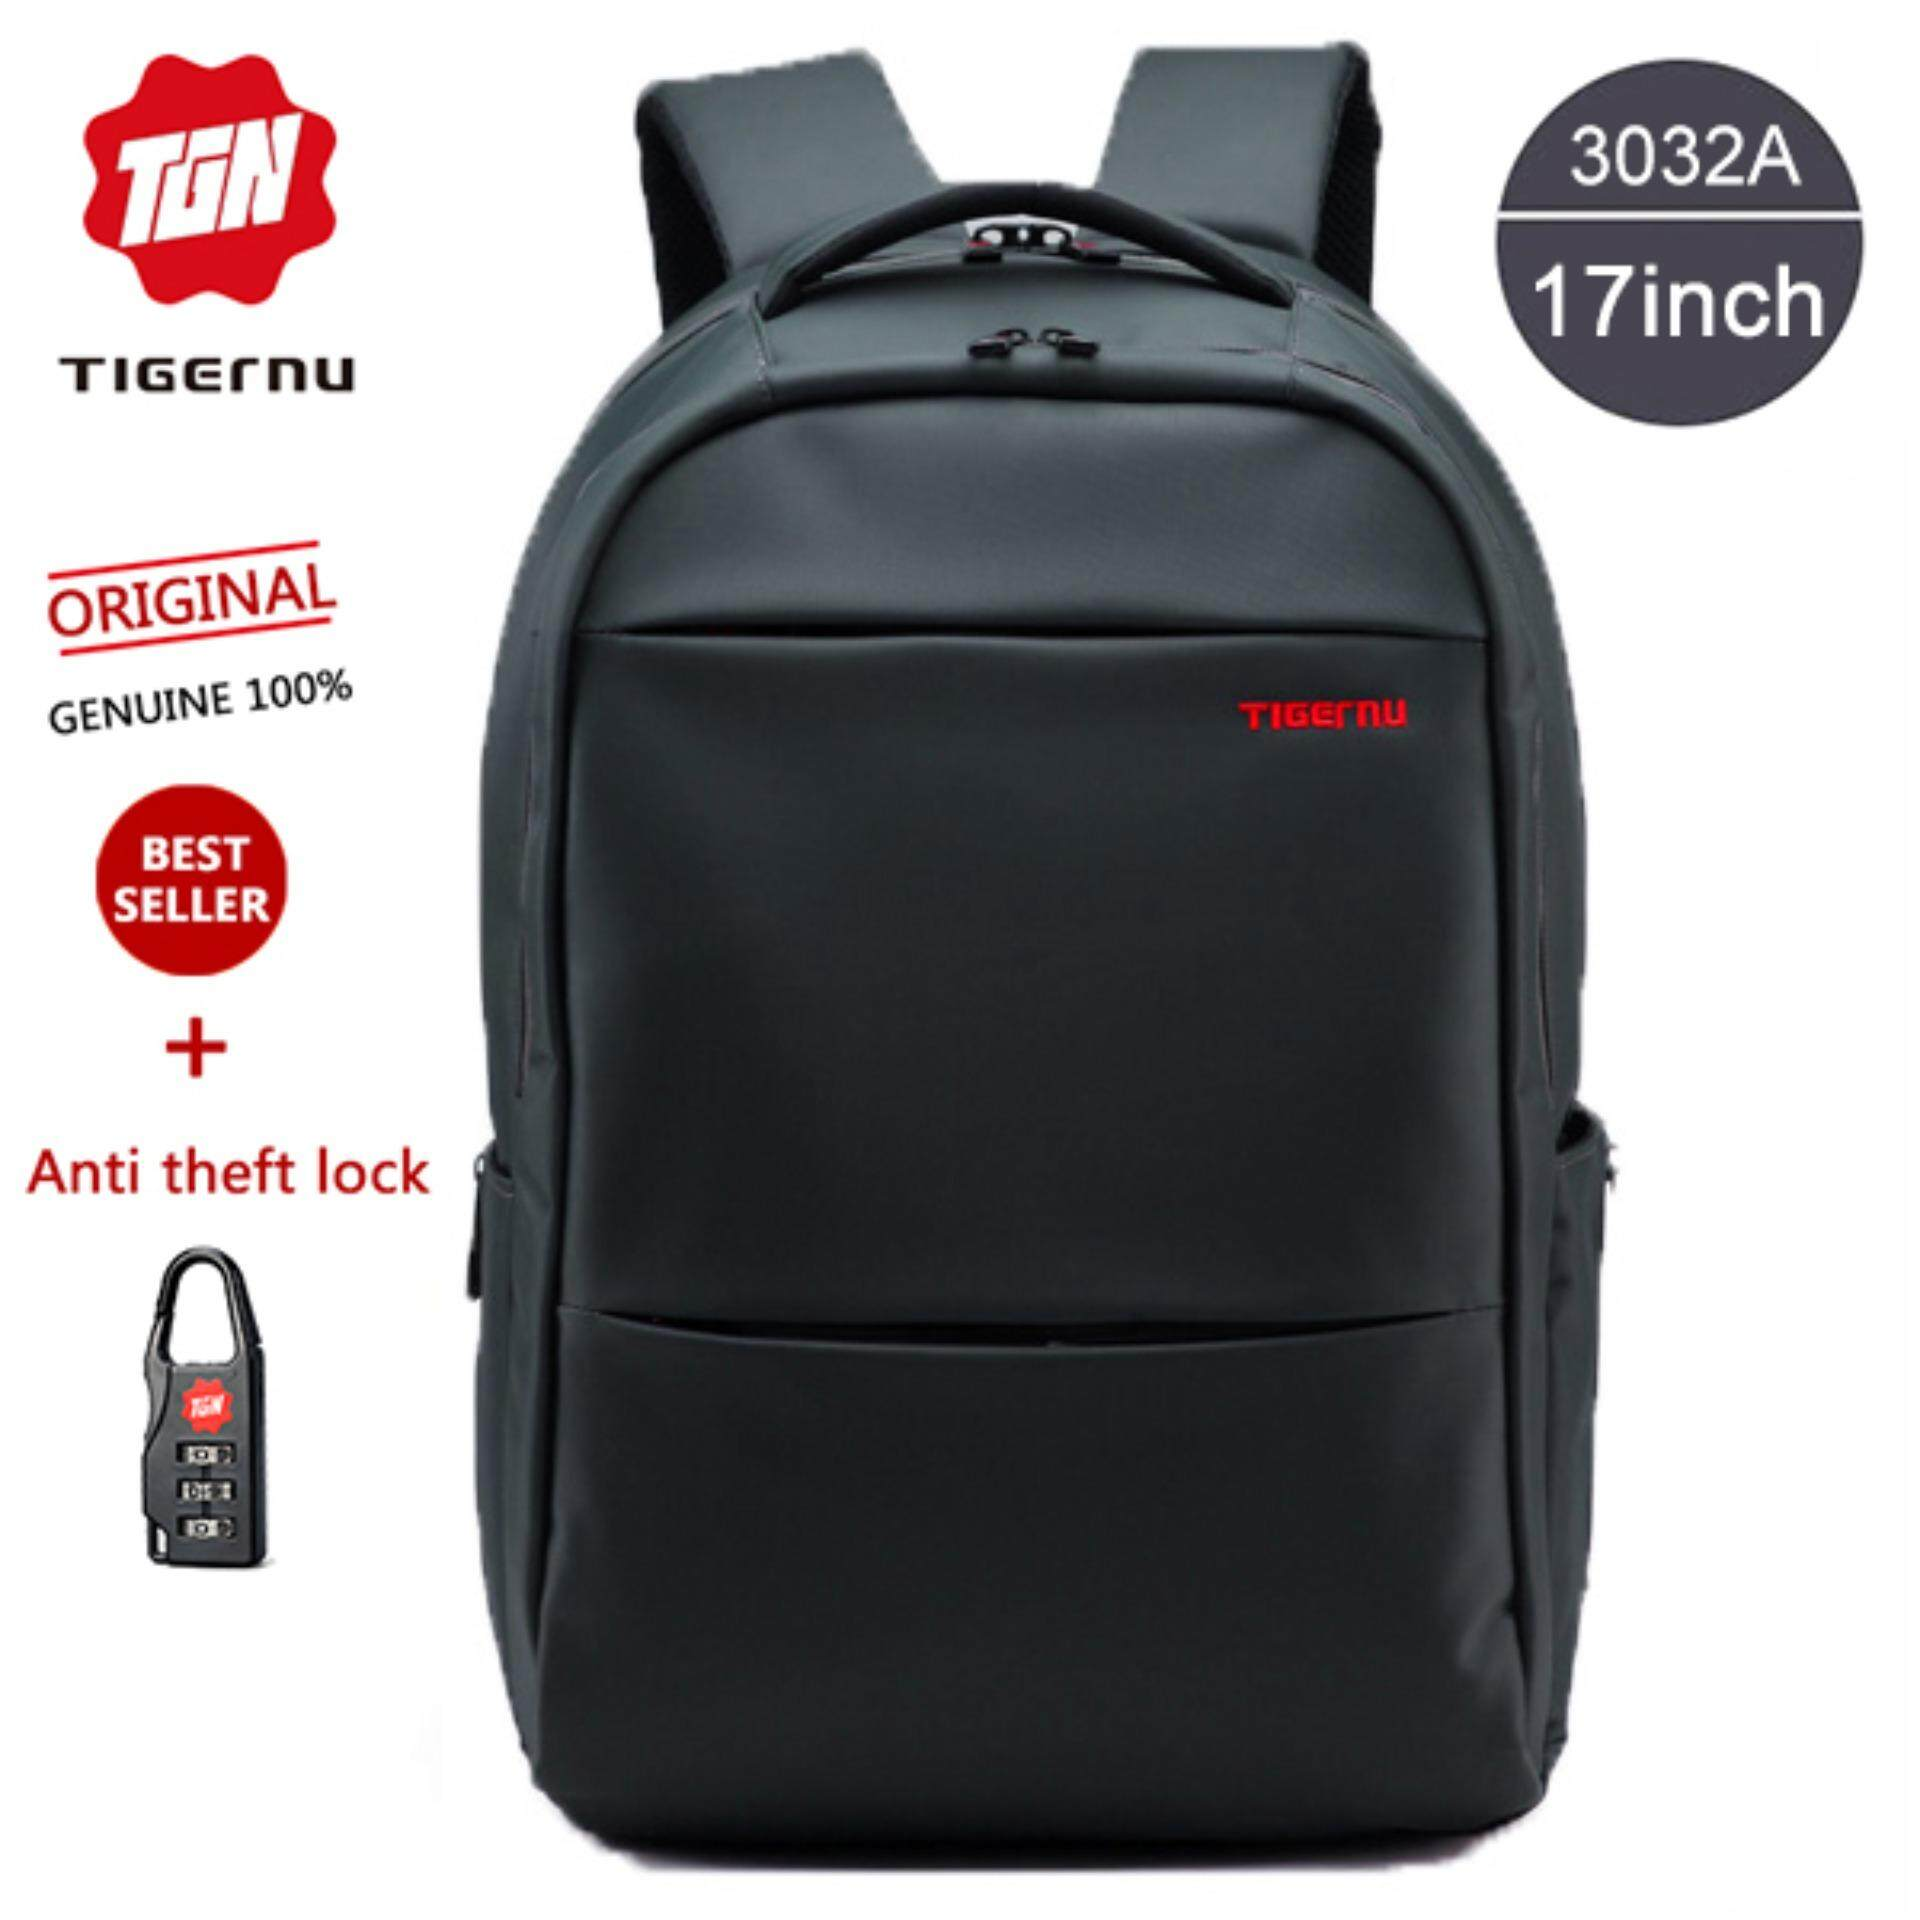 5680f26b83 Tigernu Travel Luggage price in Malaysia - Best Tigernu Travel Luggage